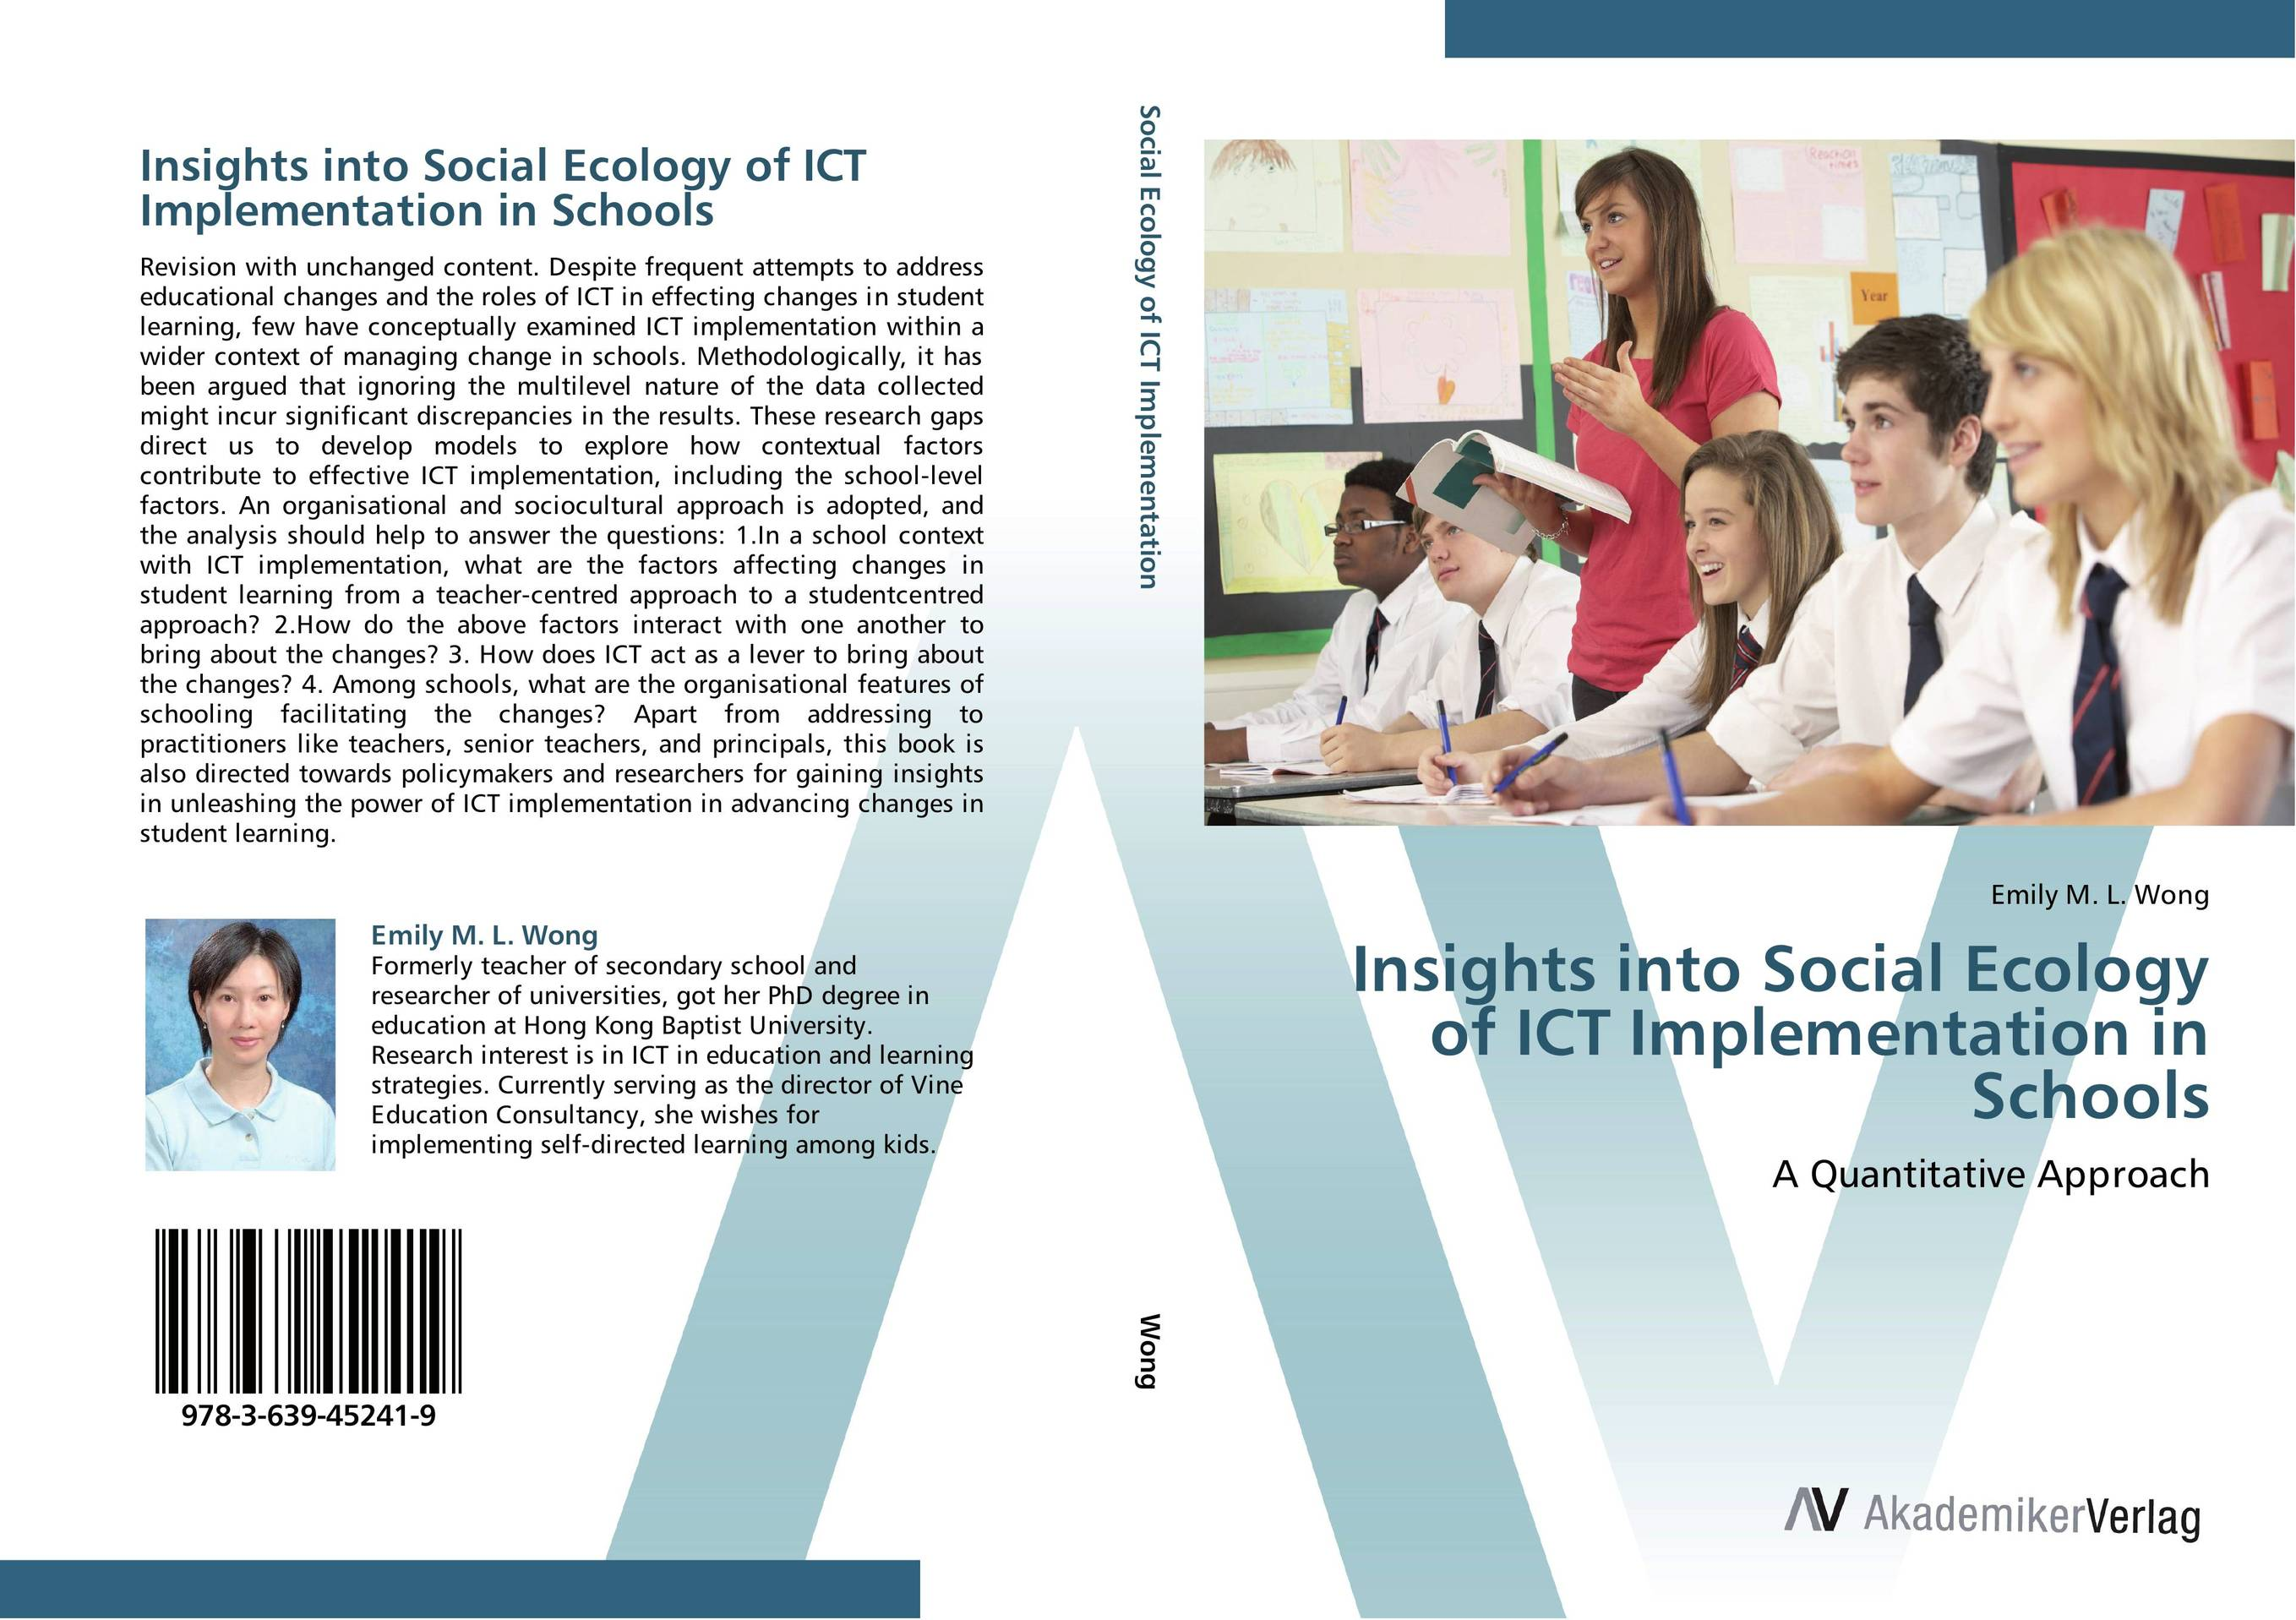 Insights into Social Ecology of ICT Implementation in Schools